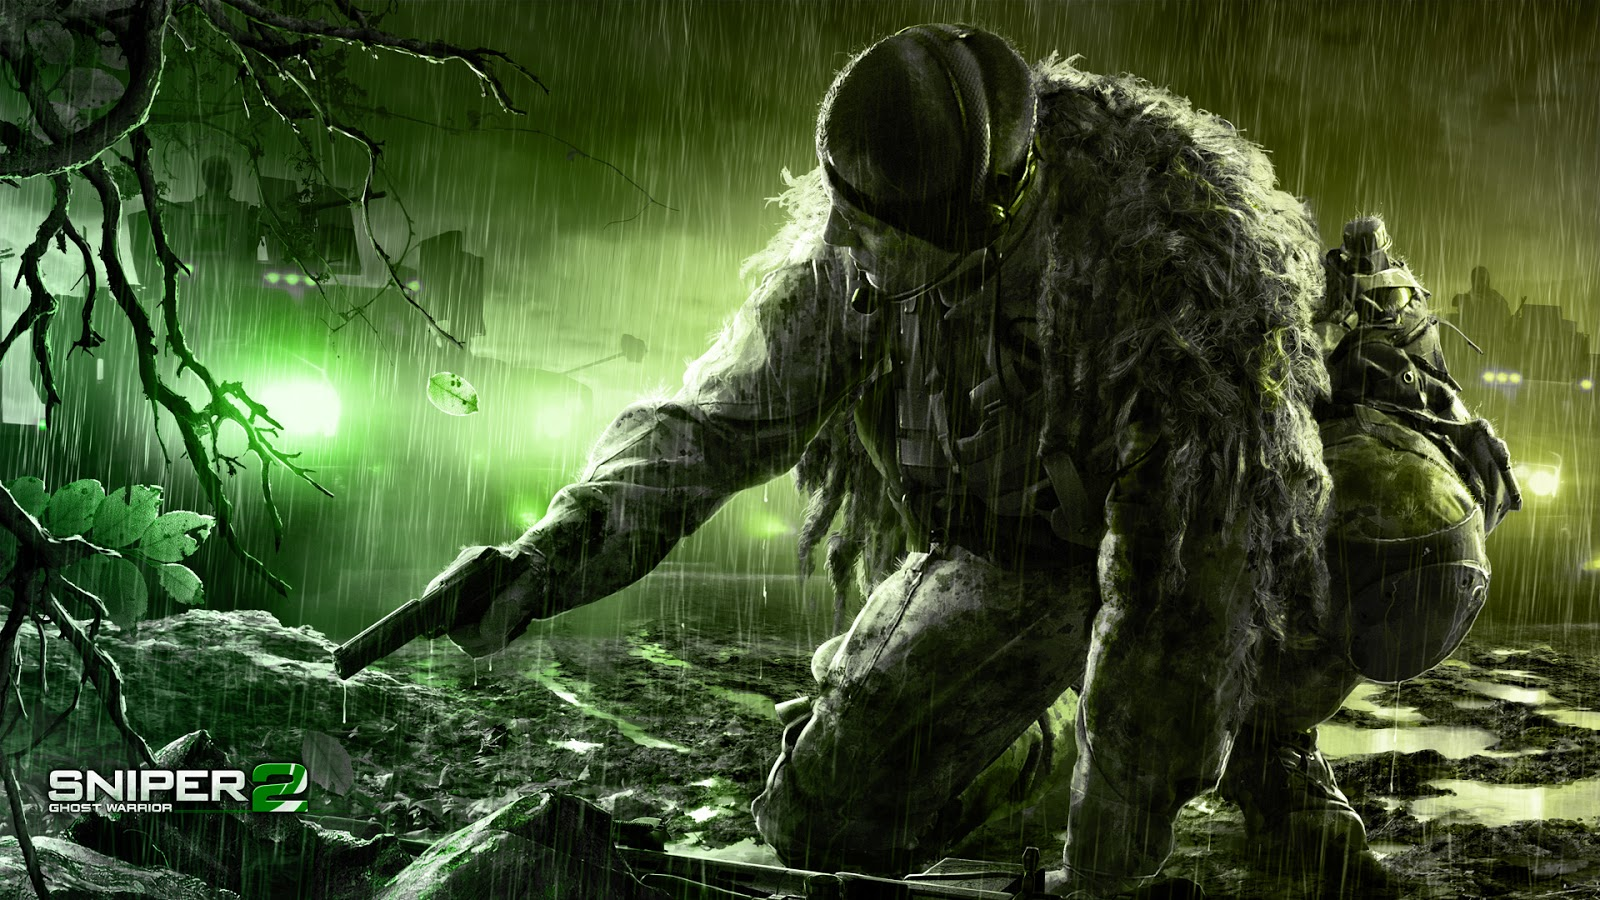 HD WALLPAPERS Sniper Ghost Warrior 2 HD wallpapers 1600x900